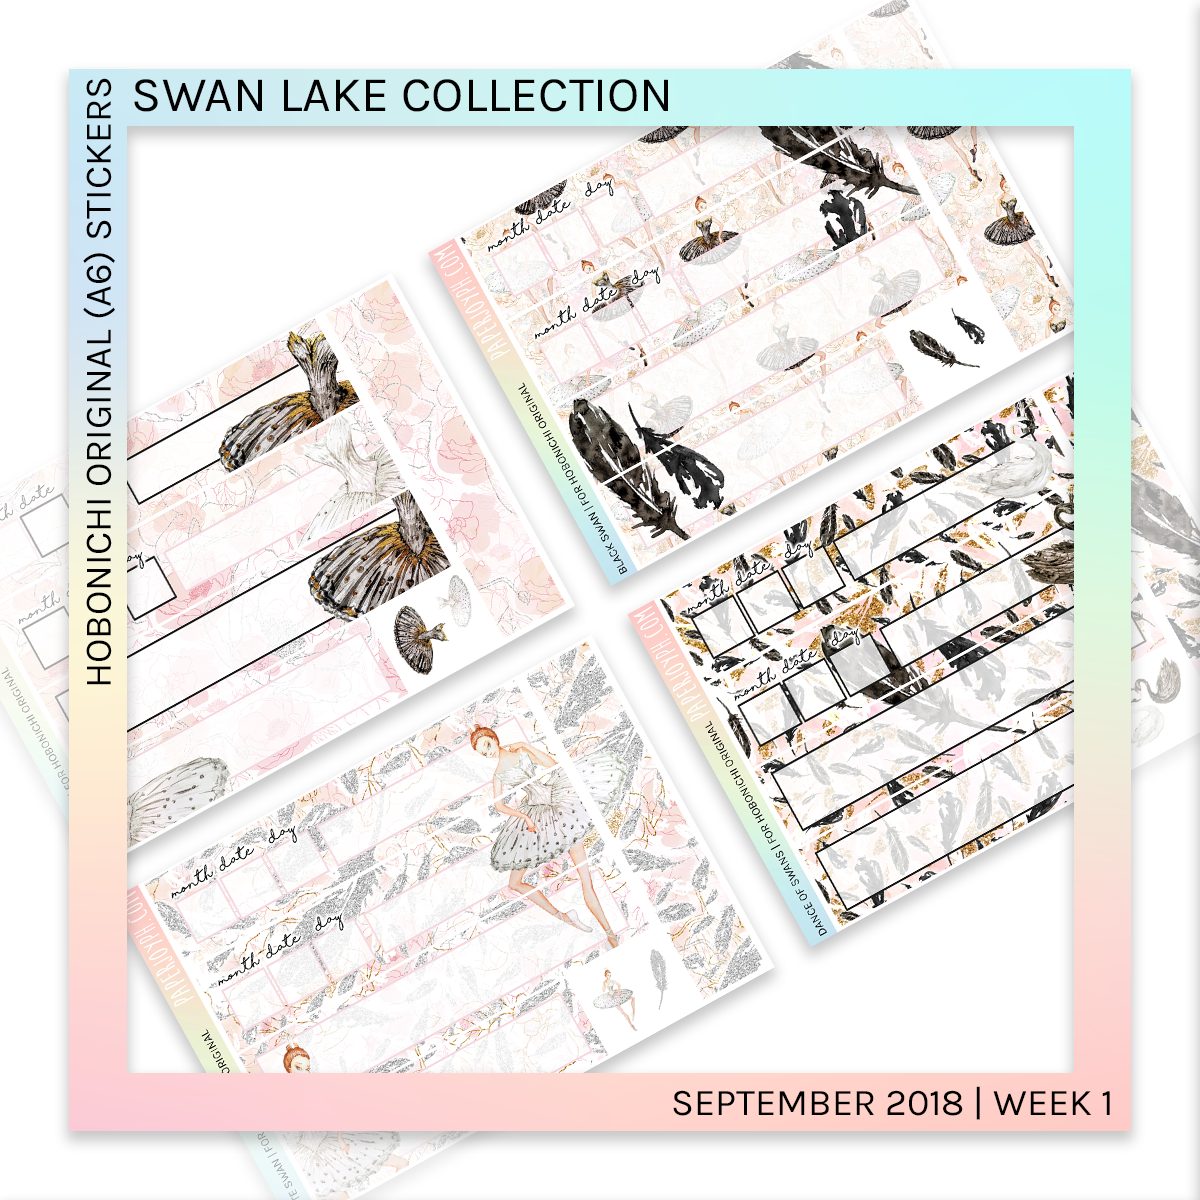 HOBONICHI ORIGINAL (A6) | Dance of Swans